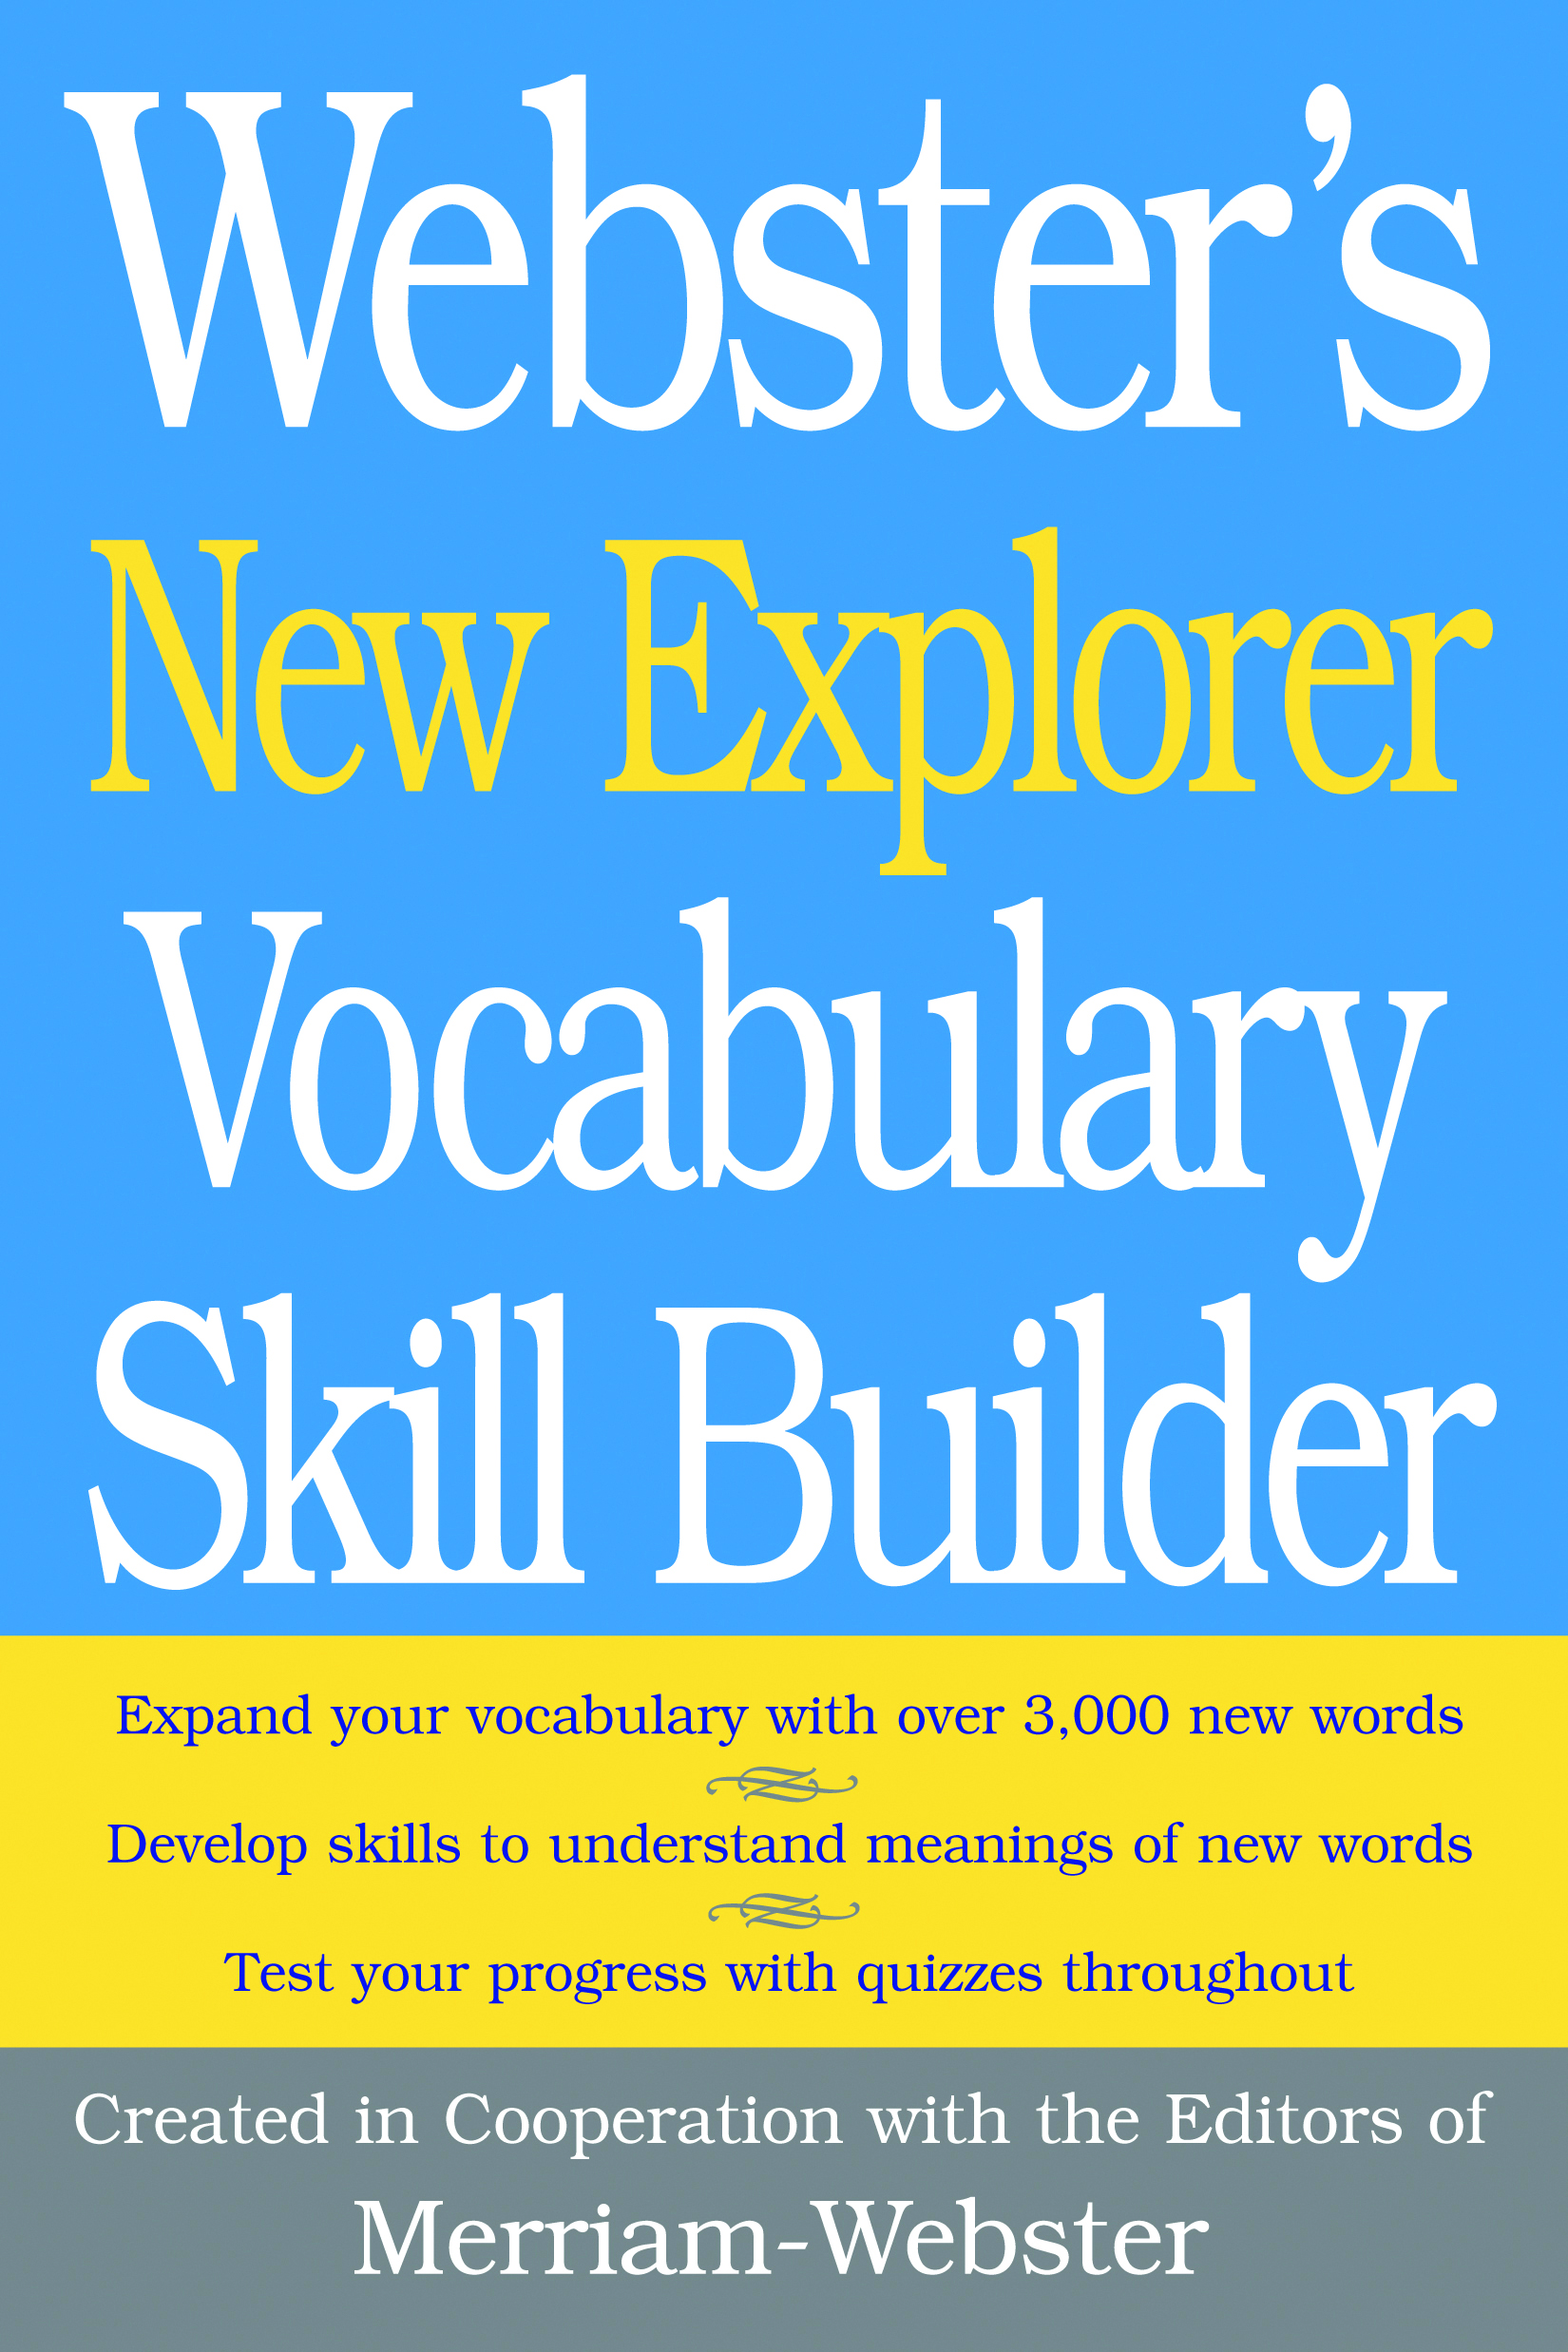 Webster's New Explorer Vocabulary Skill Builder | Federal Street Press